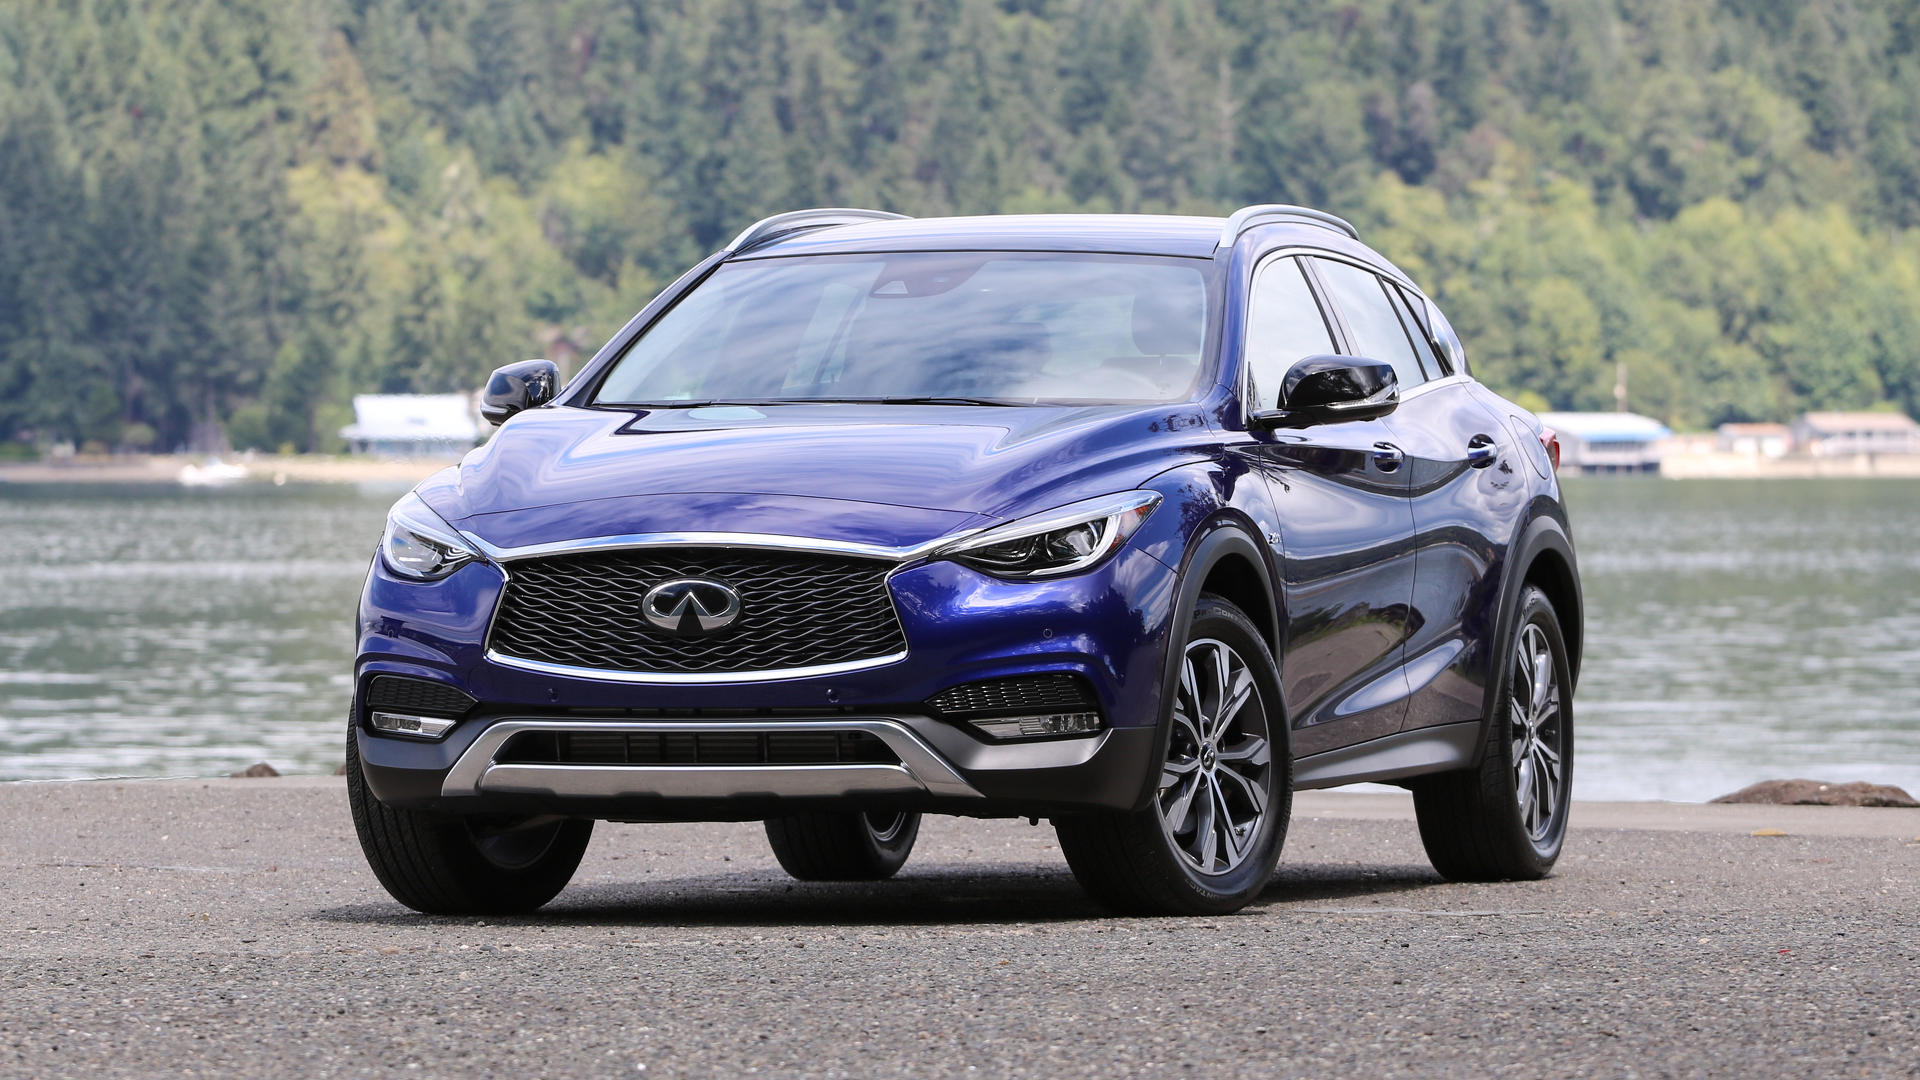 Luxury Car Pictures Wallpaper First Drive 2017 Infiniti Qx30